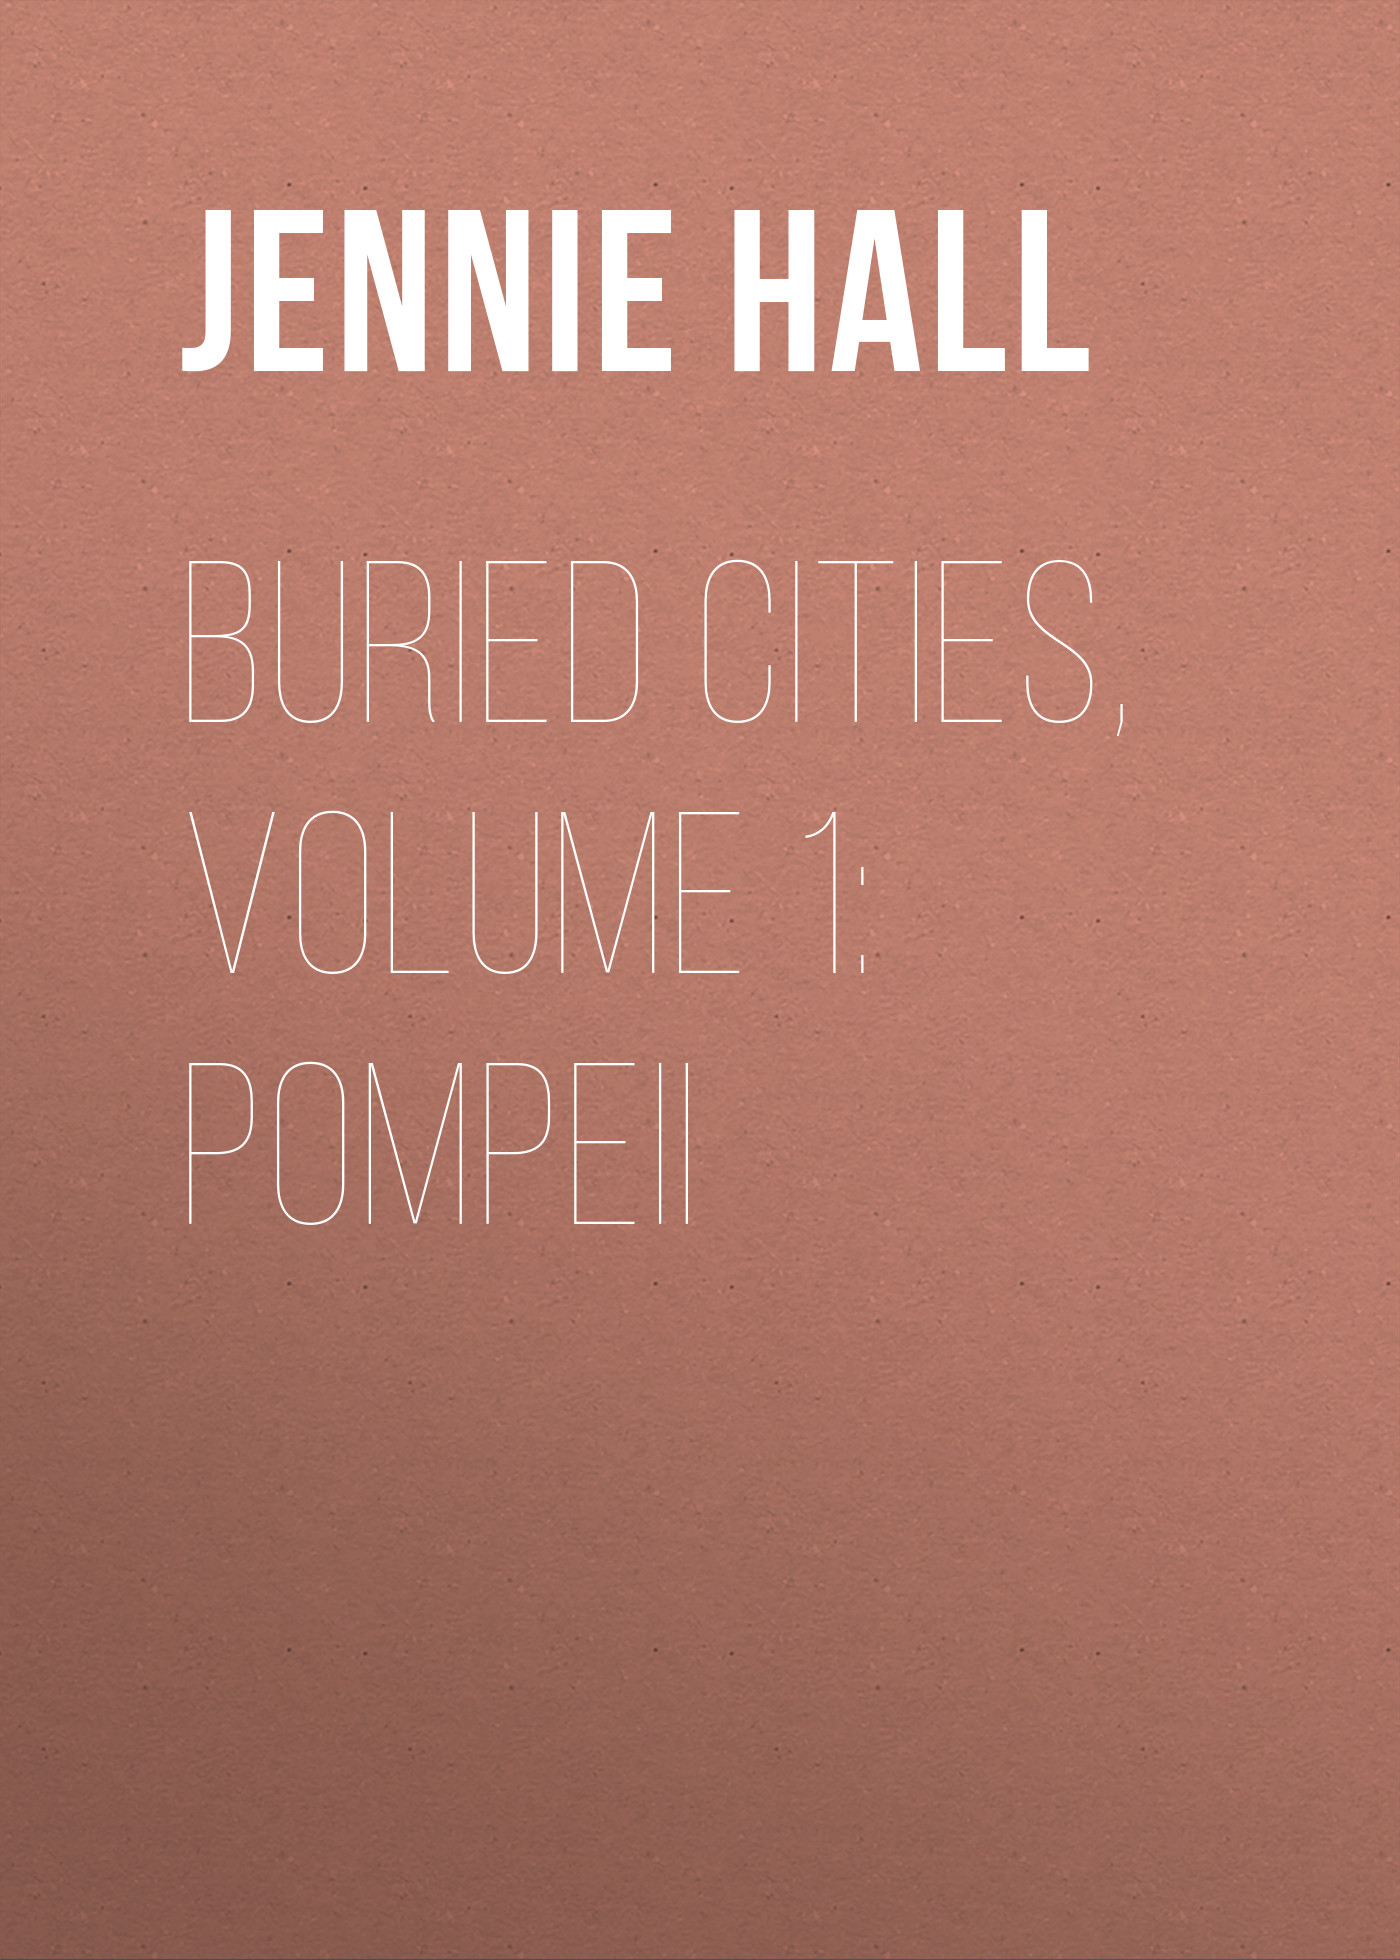 Jennie Hall Buried Cities, Volume 1: Pompeii cities without suburbs